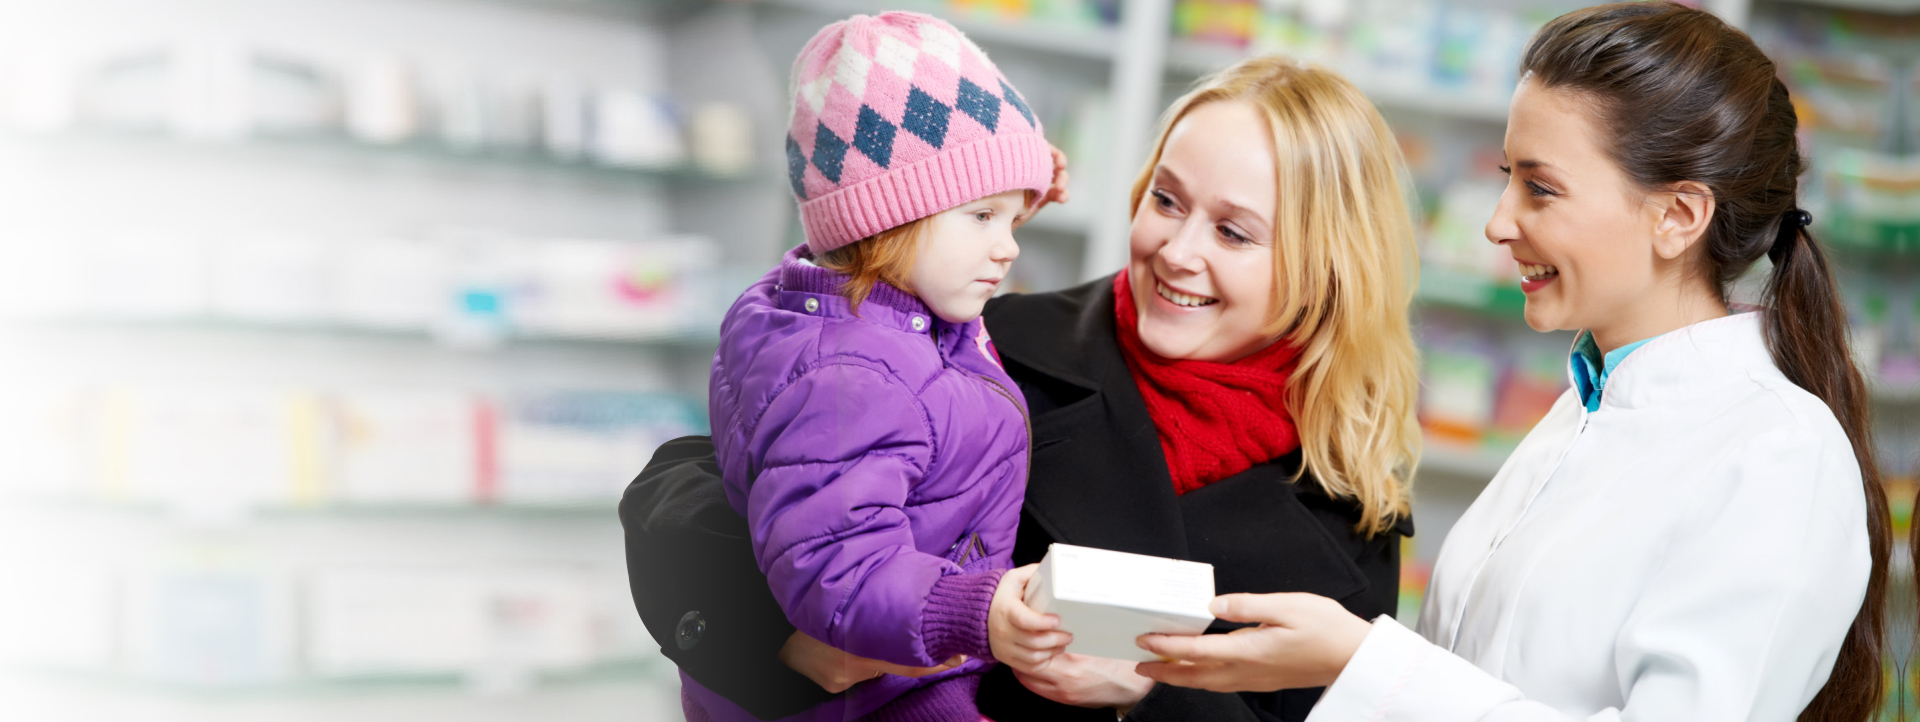 pharmacist discussing medicine to mother with child